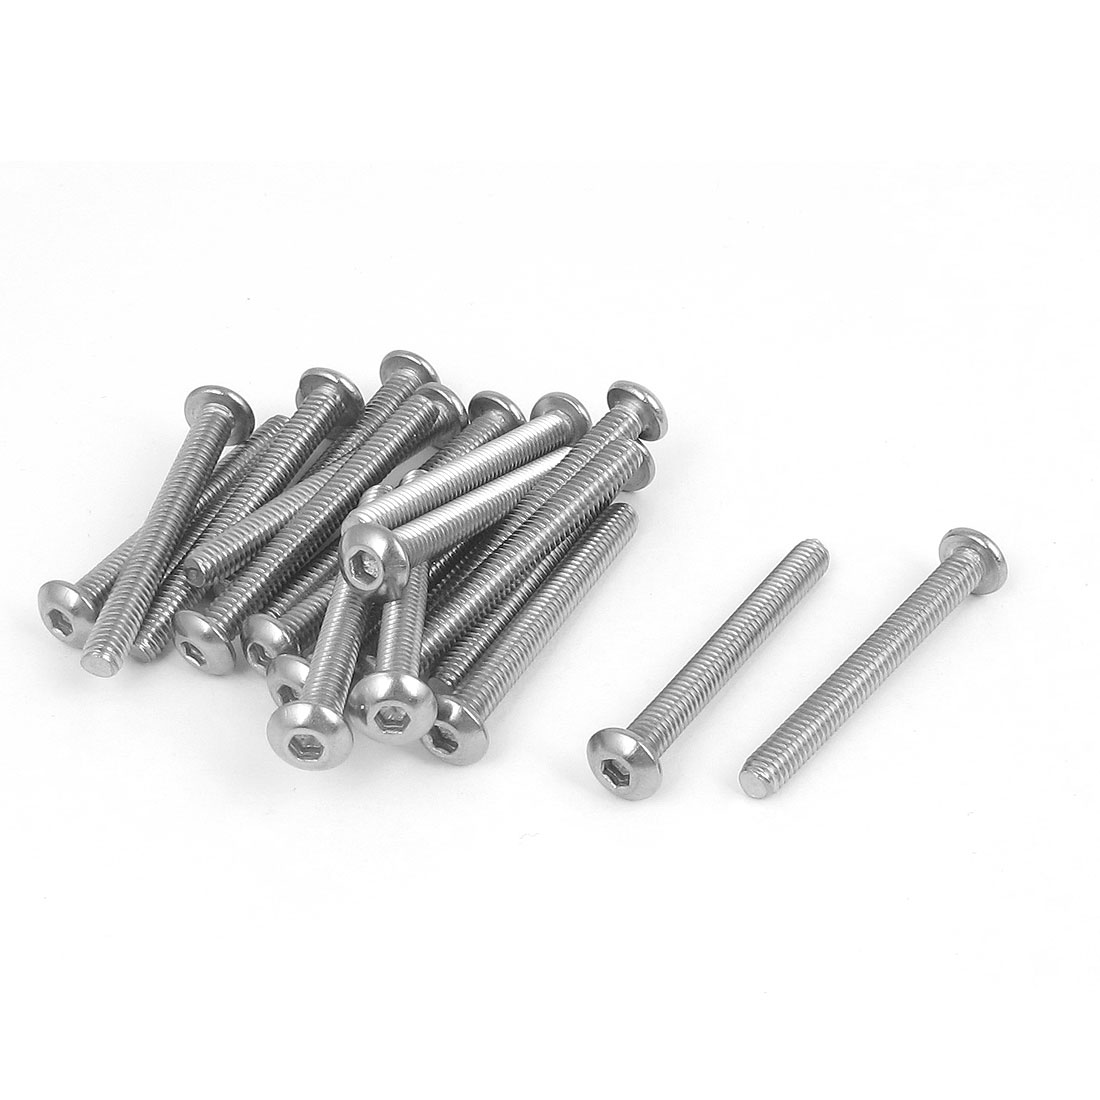 M4x35mm 304 Stainless Steel Hex Socket Machine Countersunk Round Head Screw Bolts 20PCS